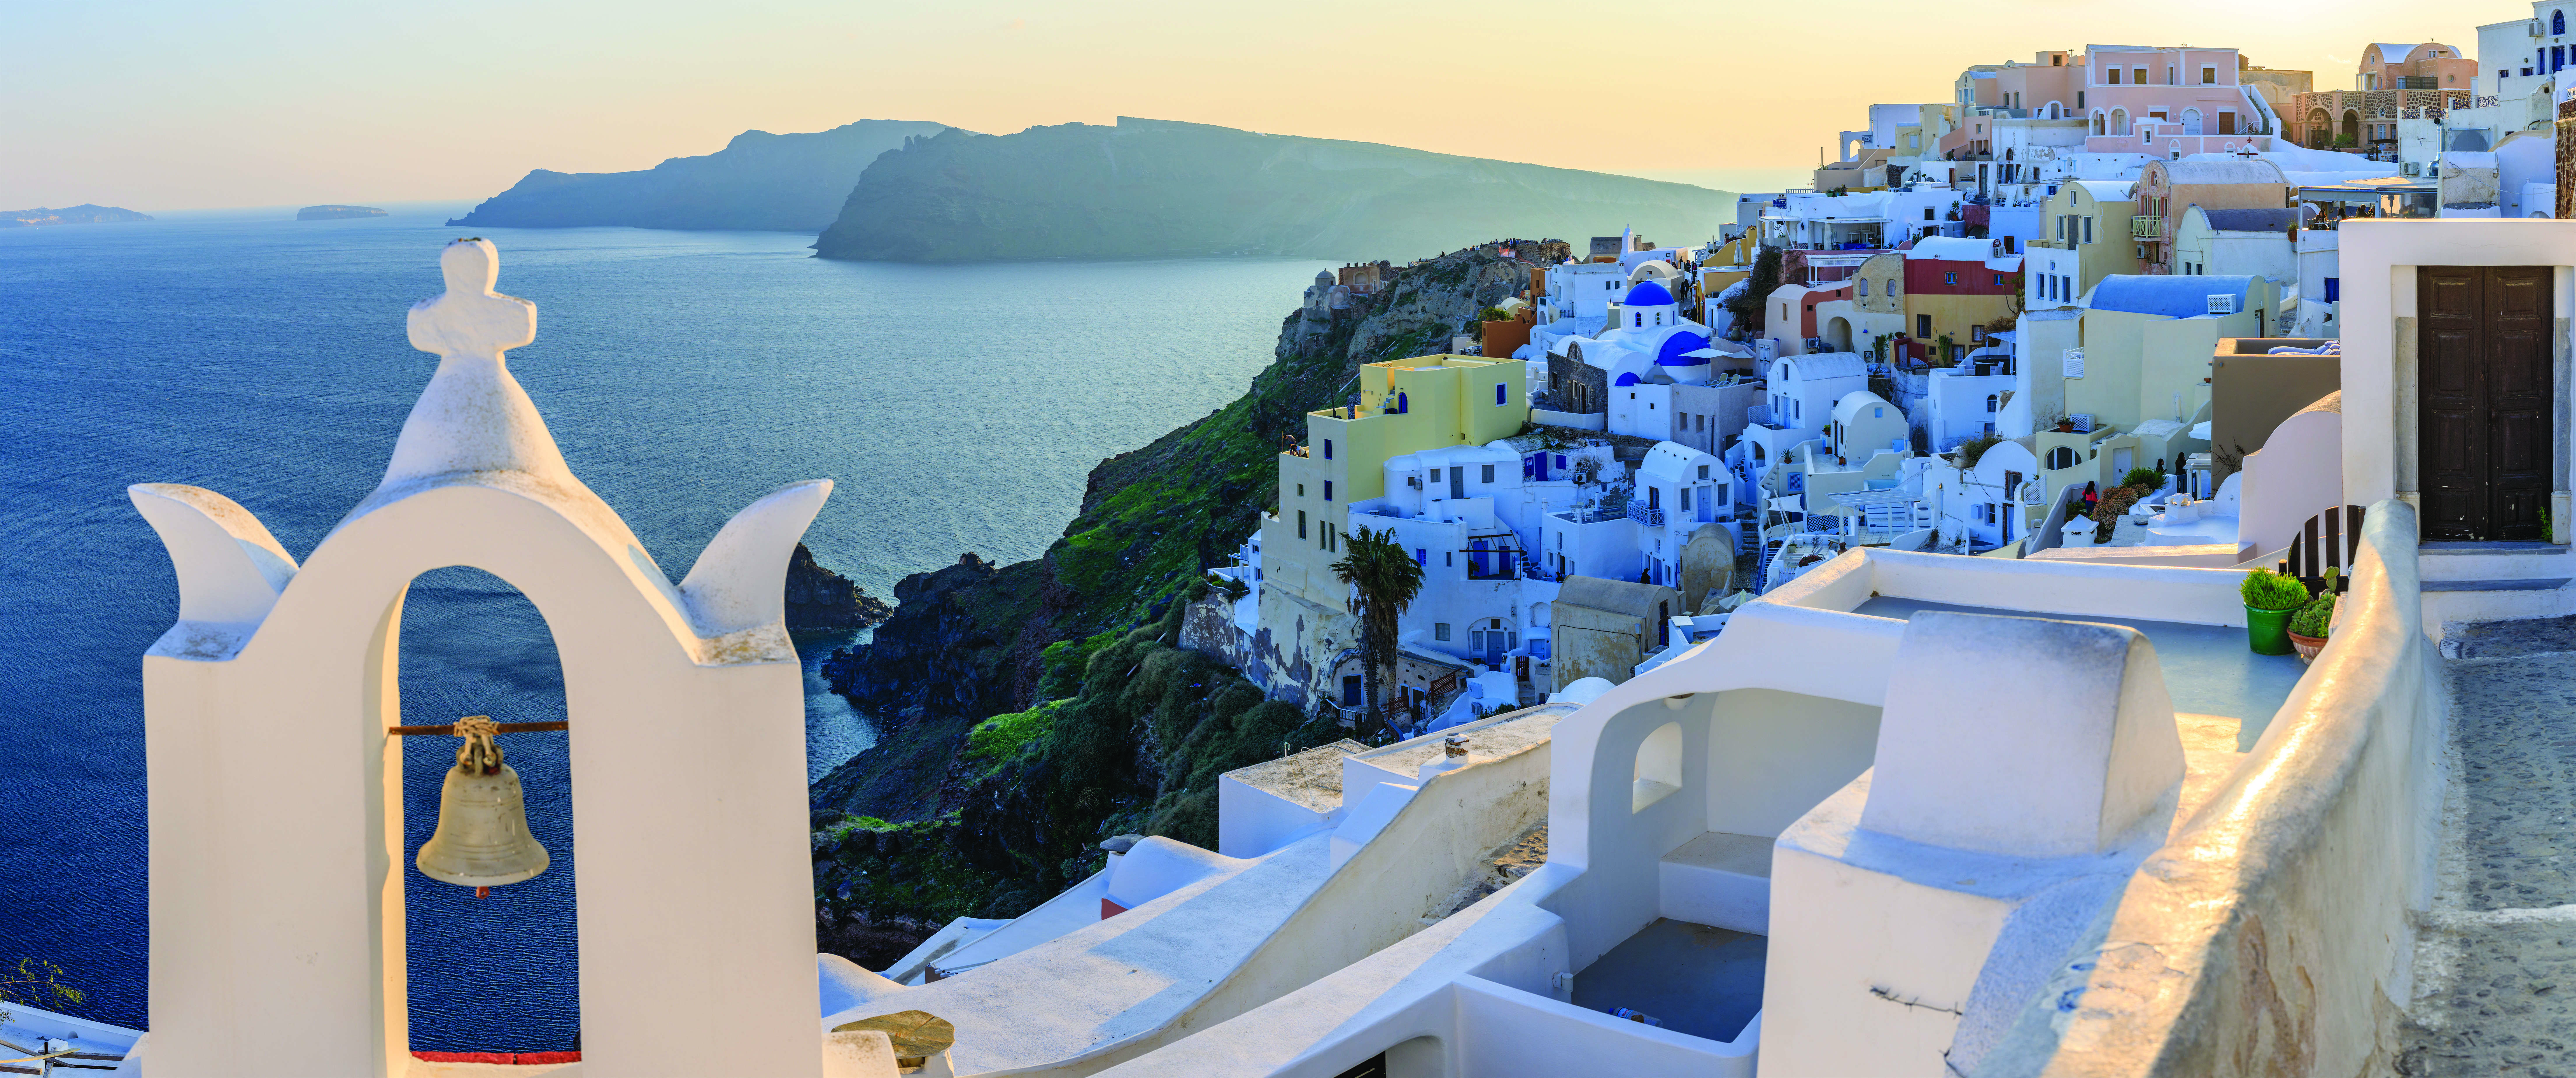 Greece may not have had its troubles to seek in recent times, but the picture-postcard qualities of destinations such as Santorini mean it retains its appeal for investors